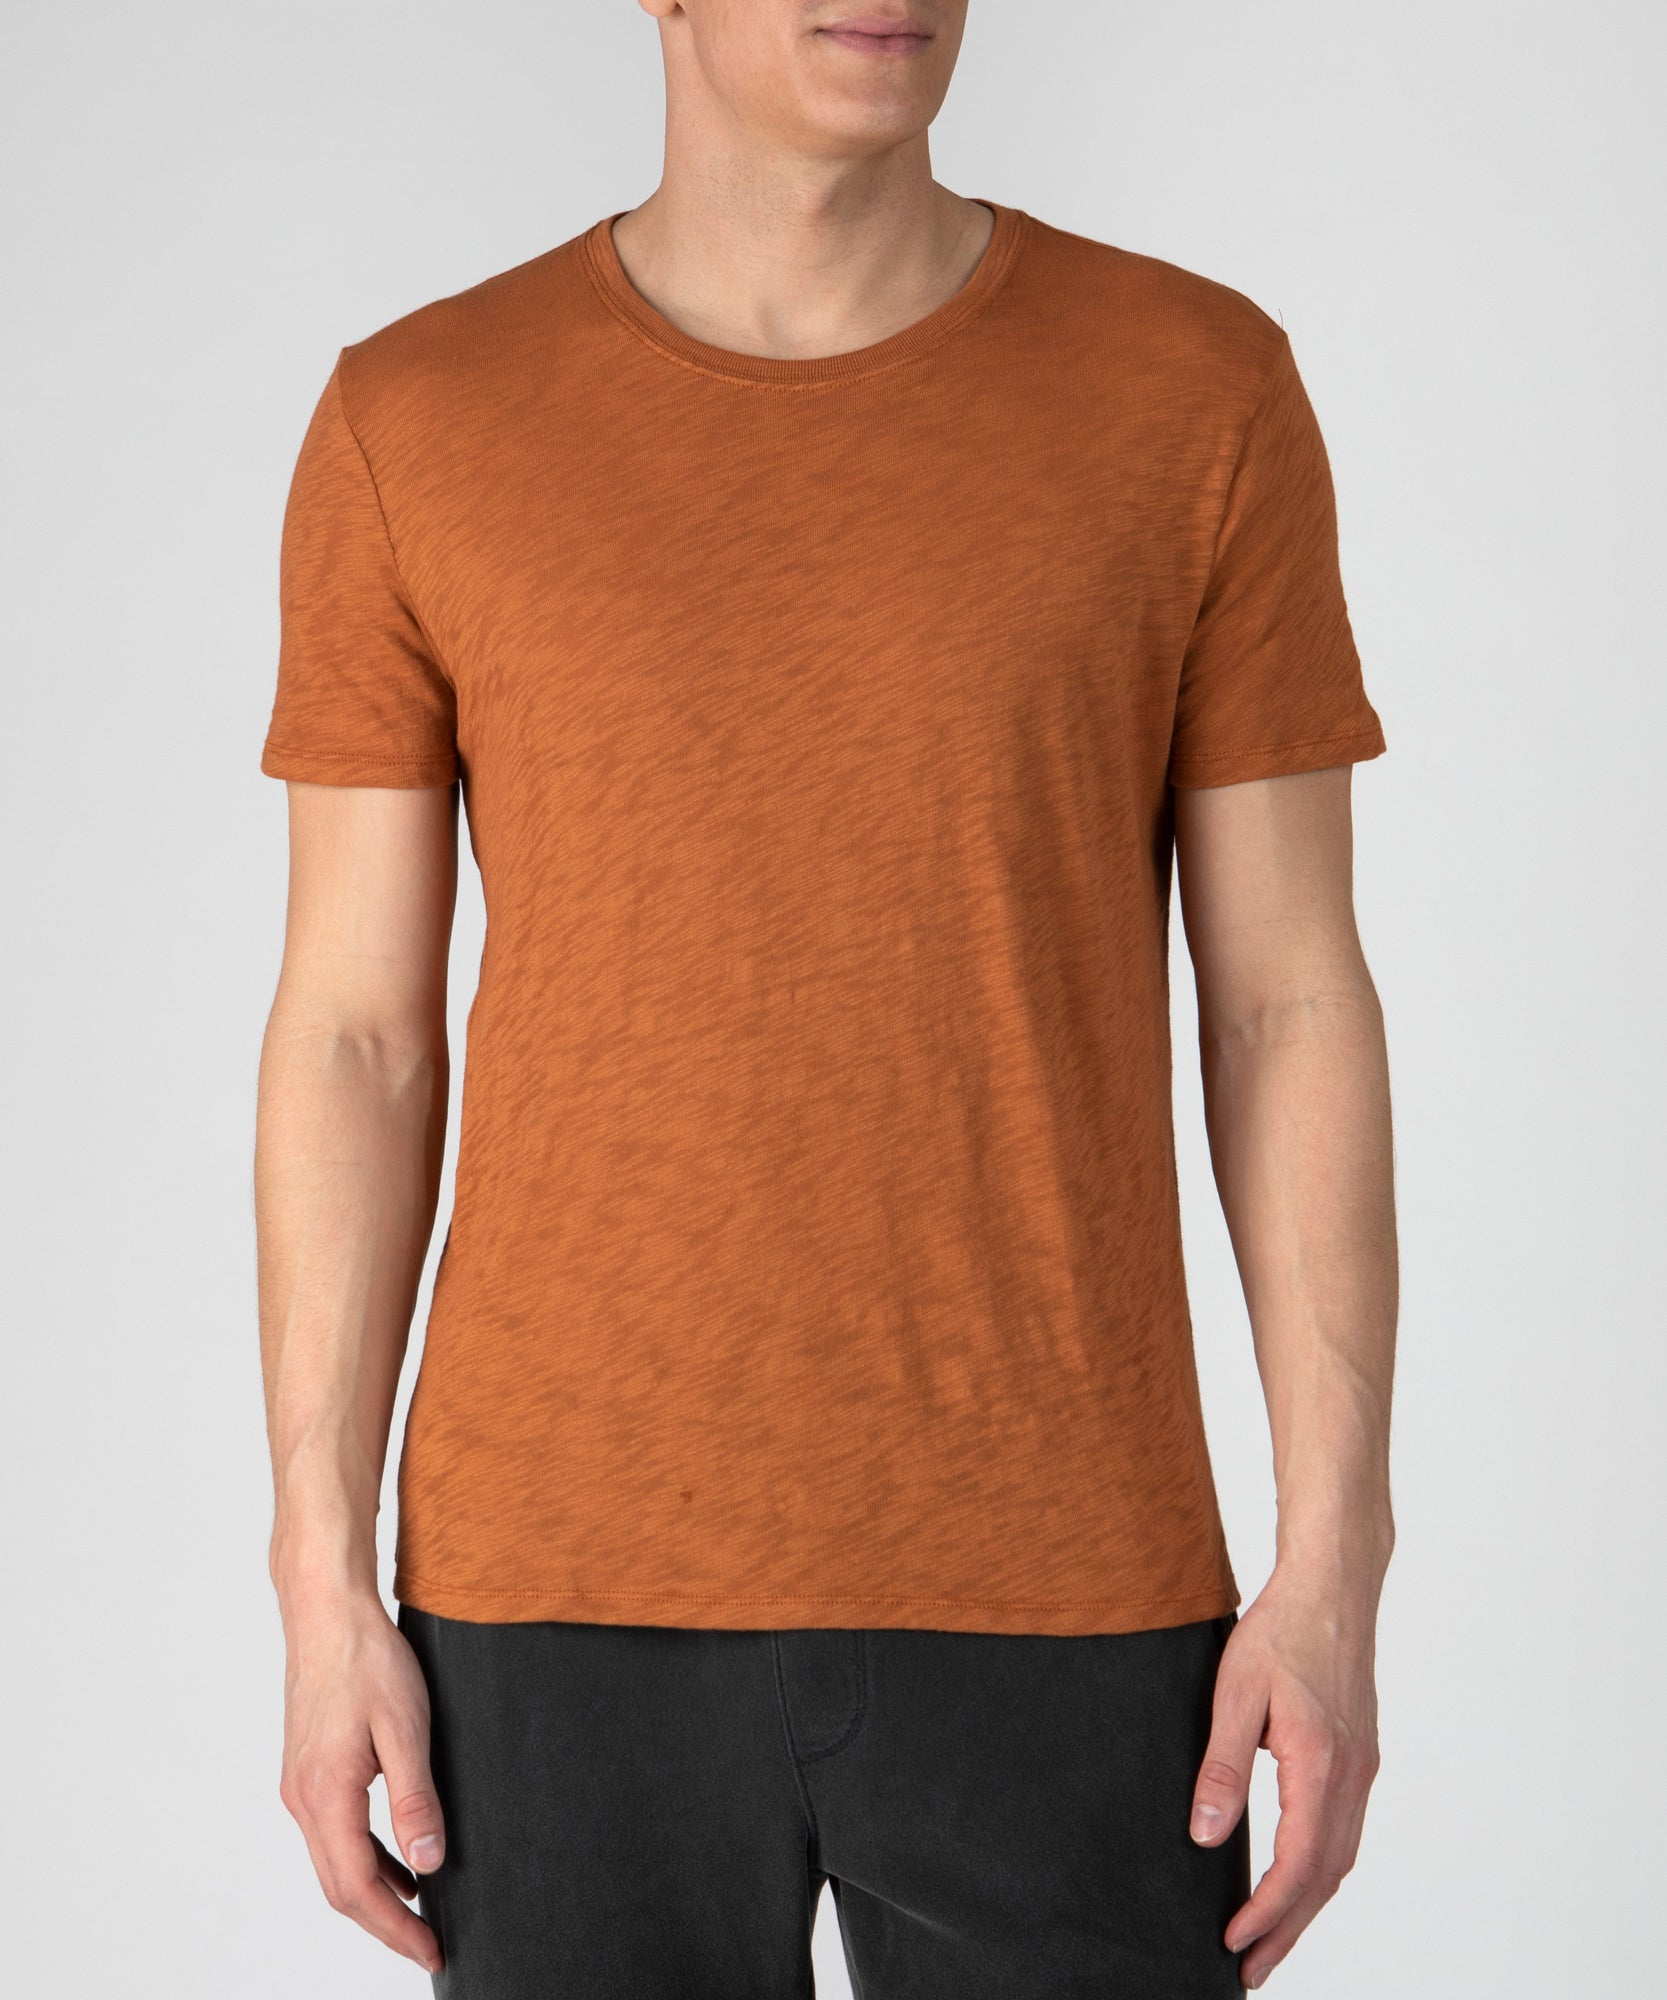 Bright Rust Slub Jersey Crew Neck Tee - Men's Cotton Short Sleeve T-shirt by ATM Anthony Thomas Melillo